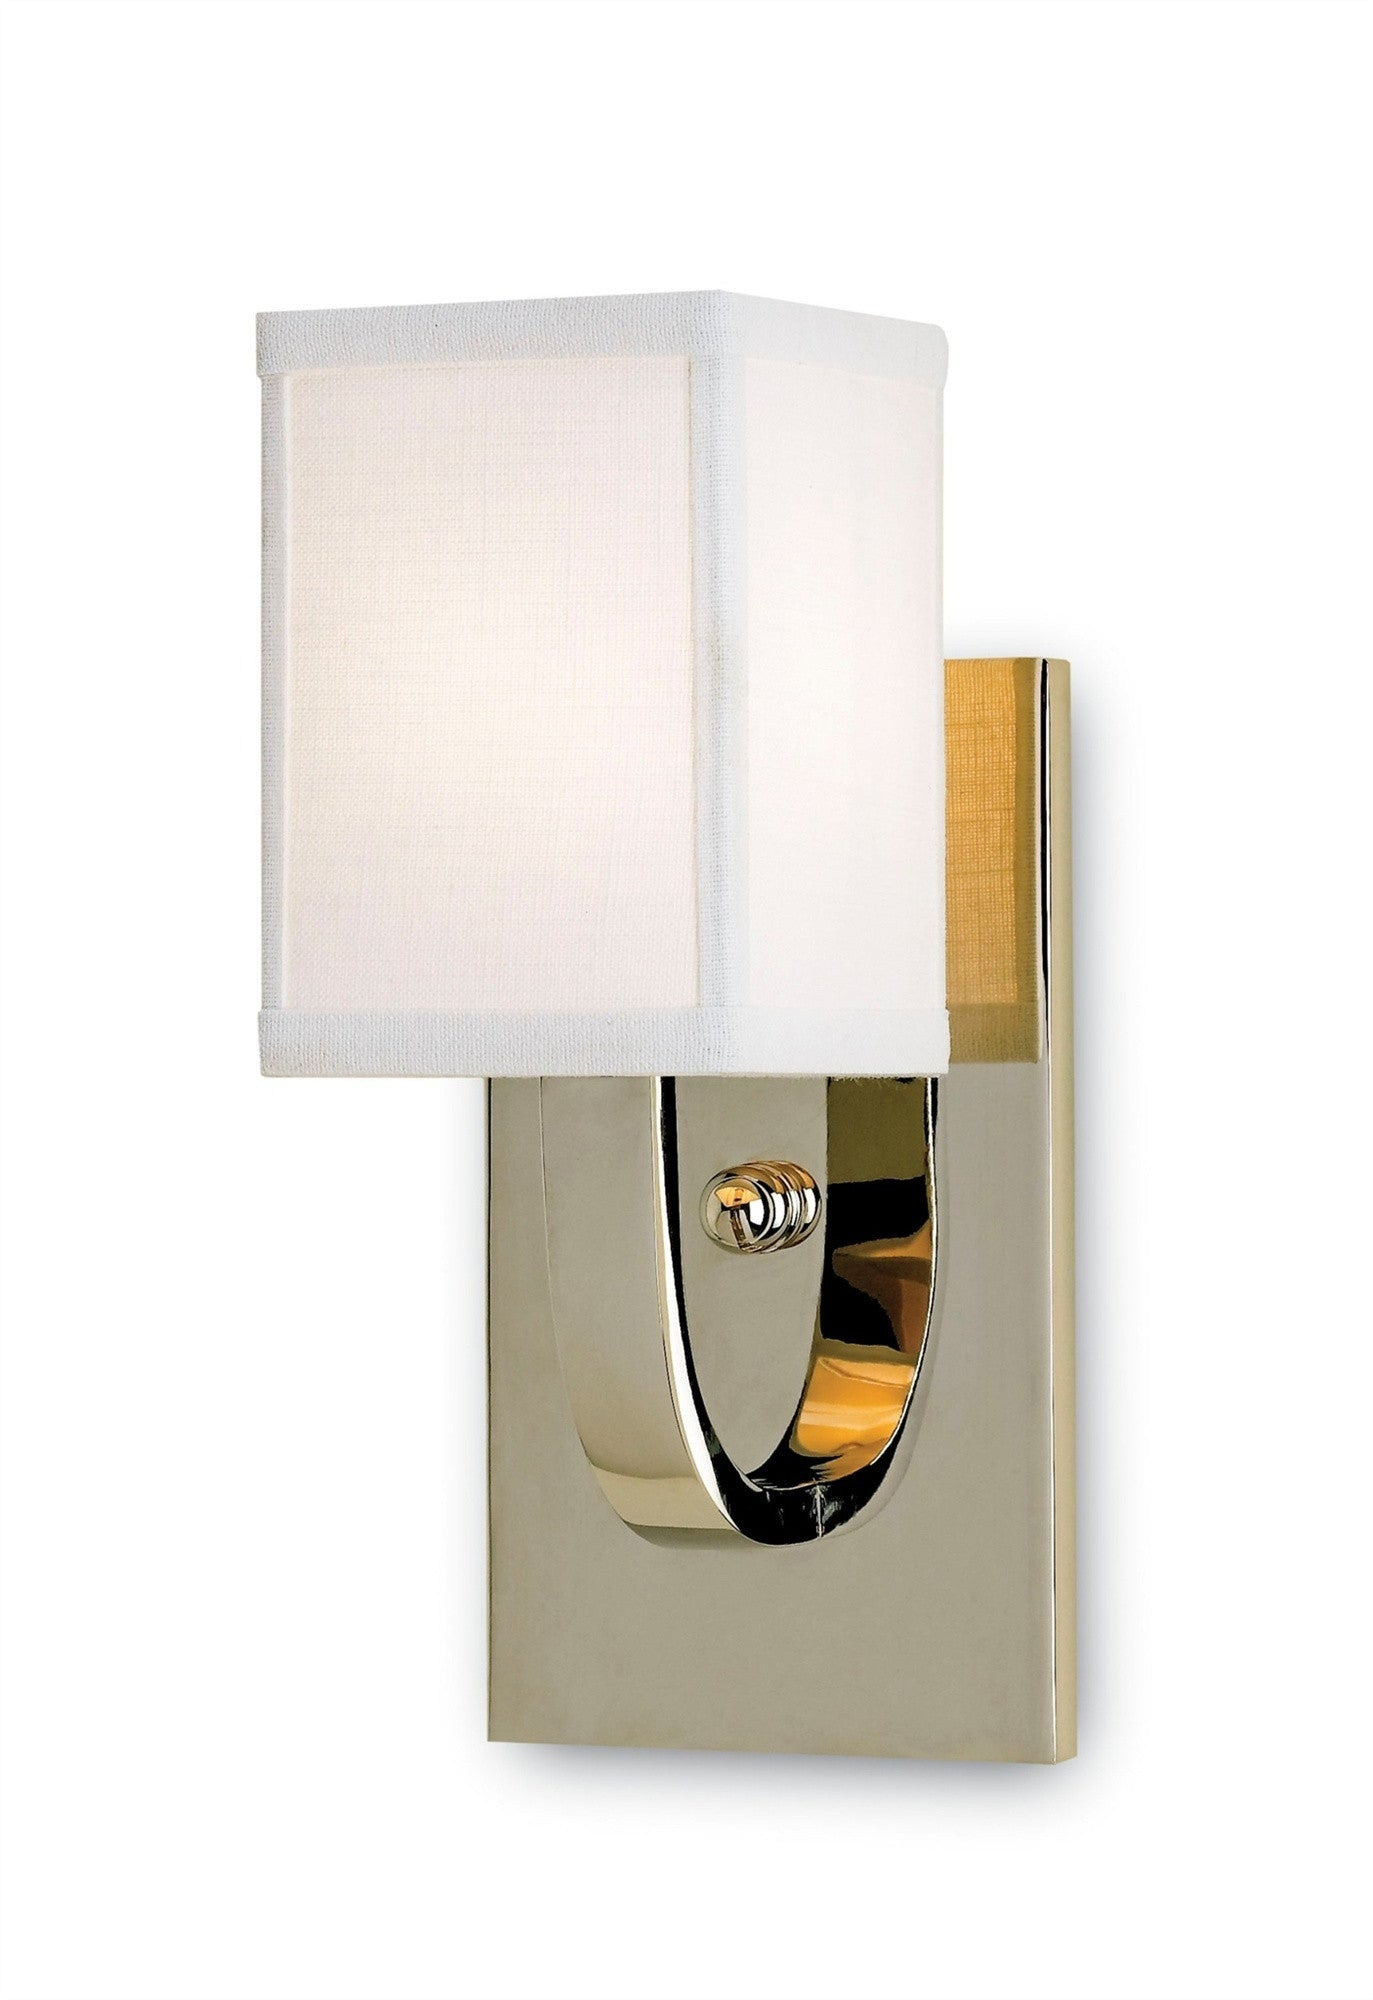 Sadler Wall Sconce design by Currey & Company